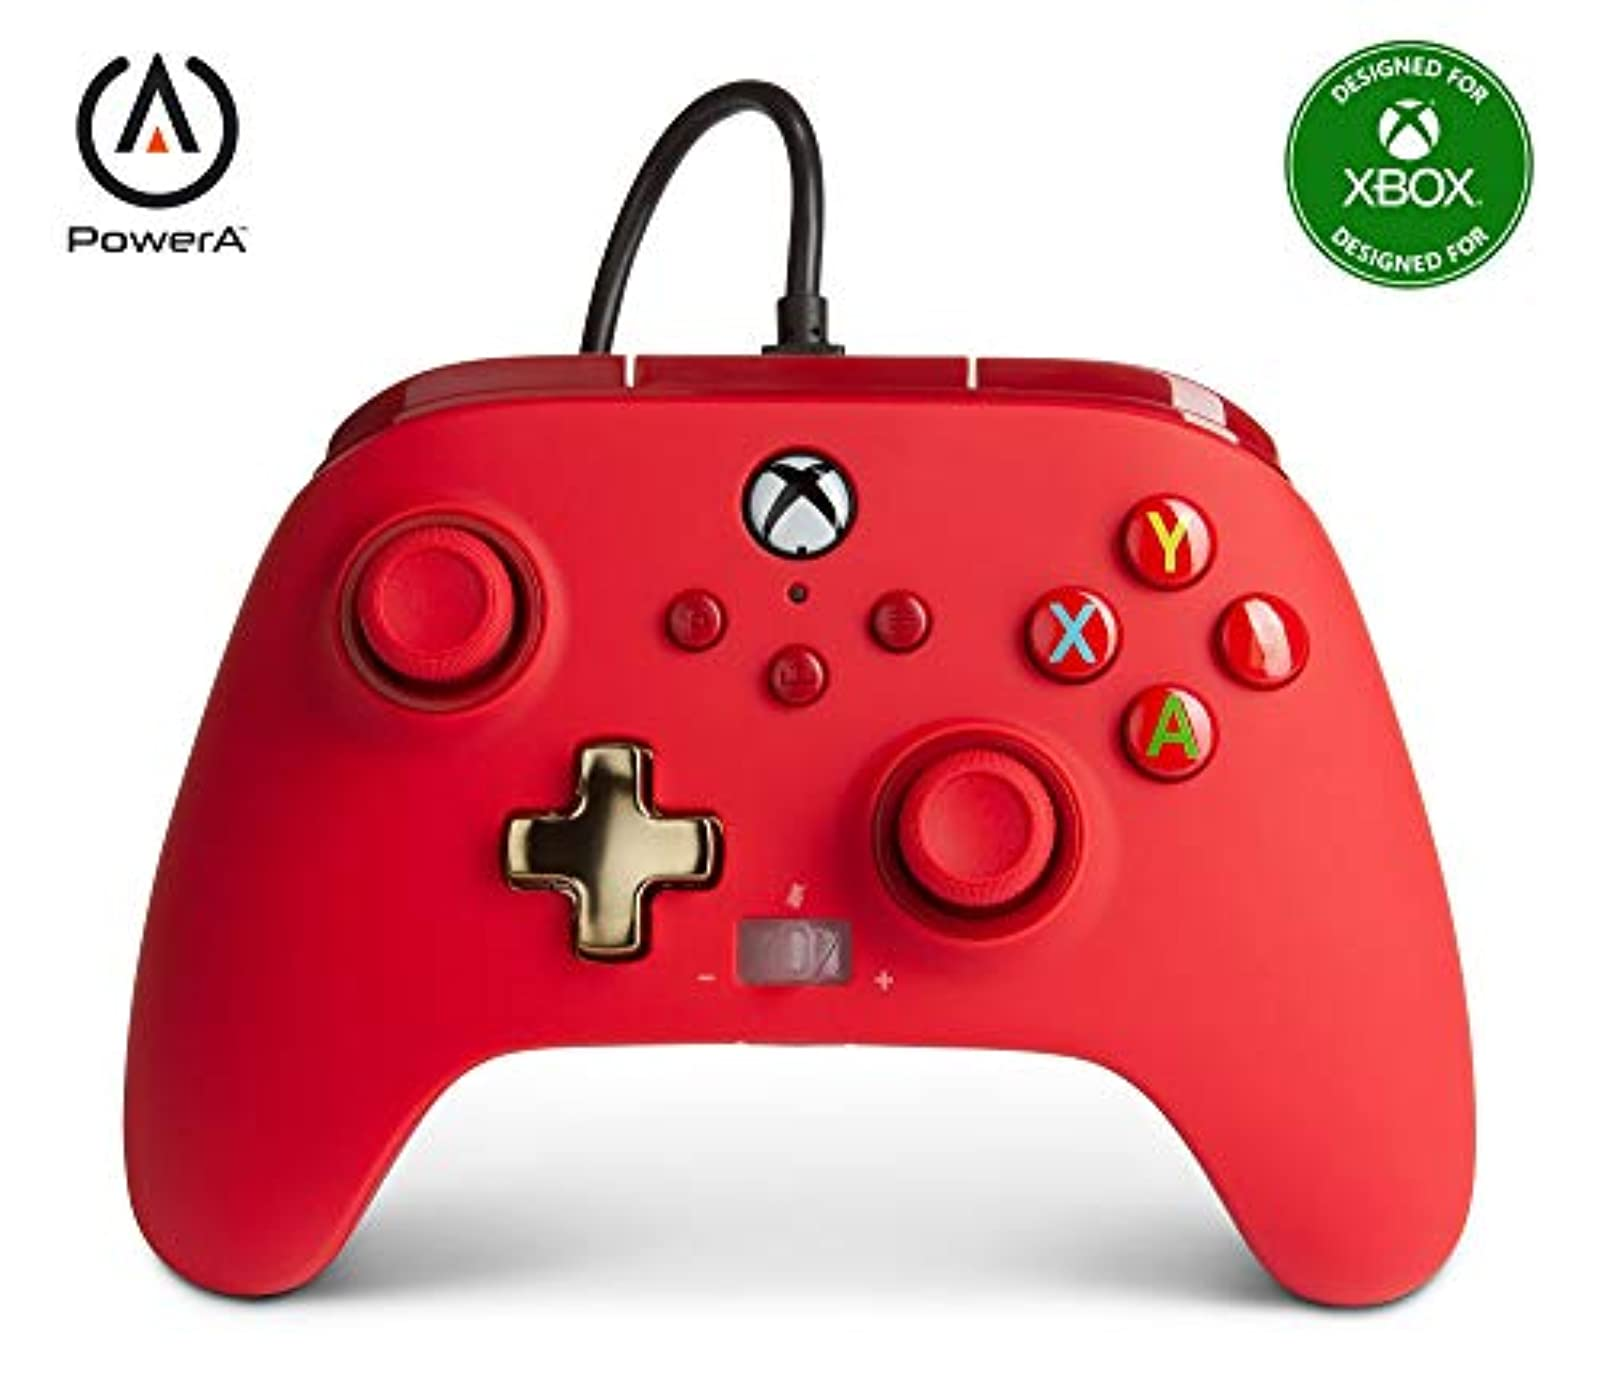 PowerA Enhanced Wired Controller For Xbox Red Gamepad Wired Video Game Controlle